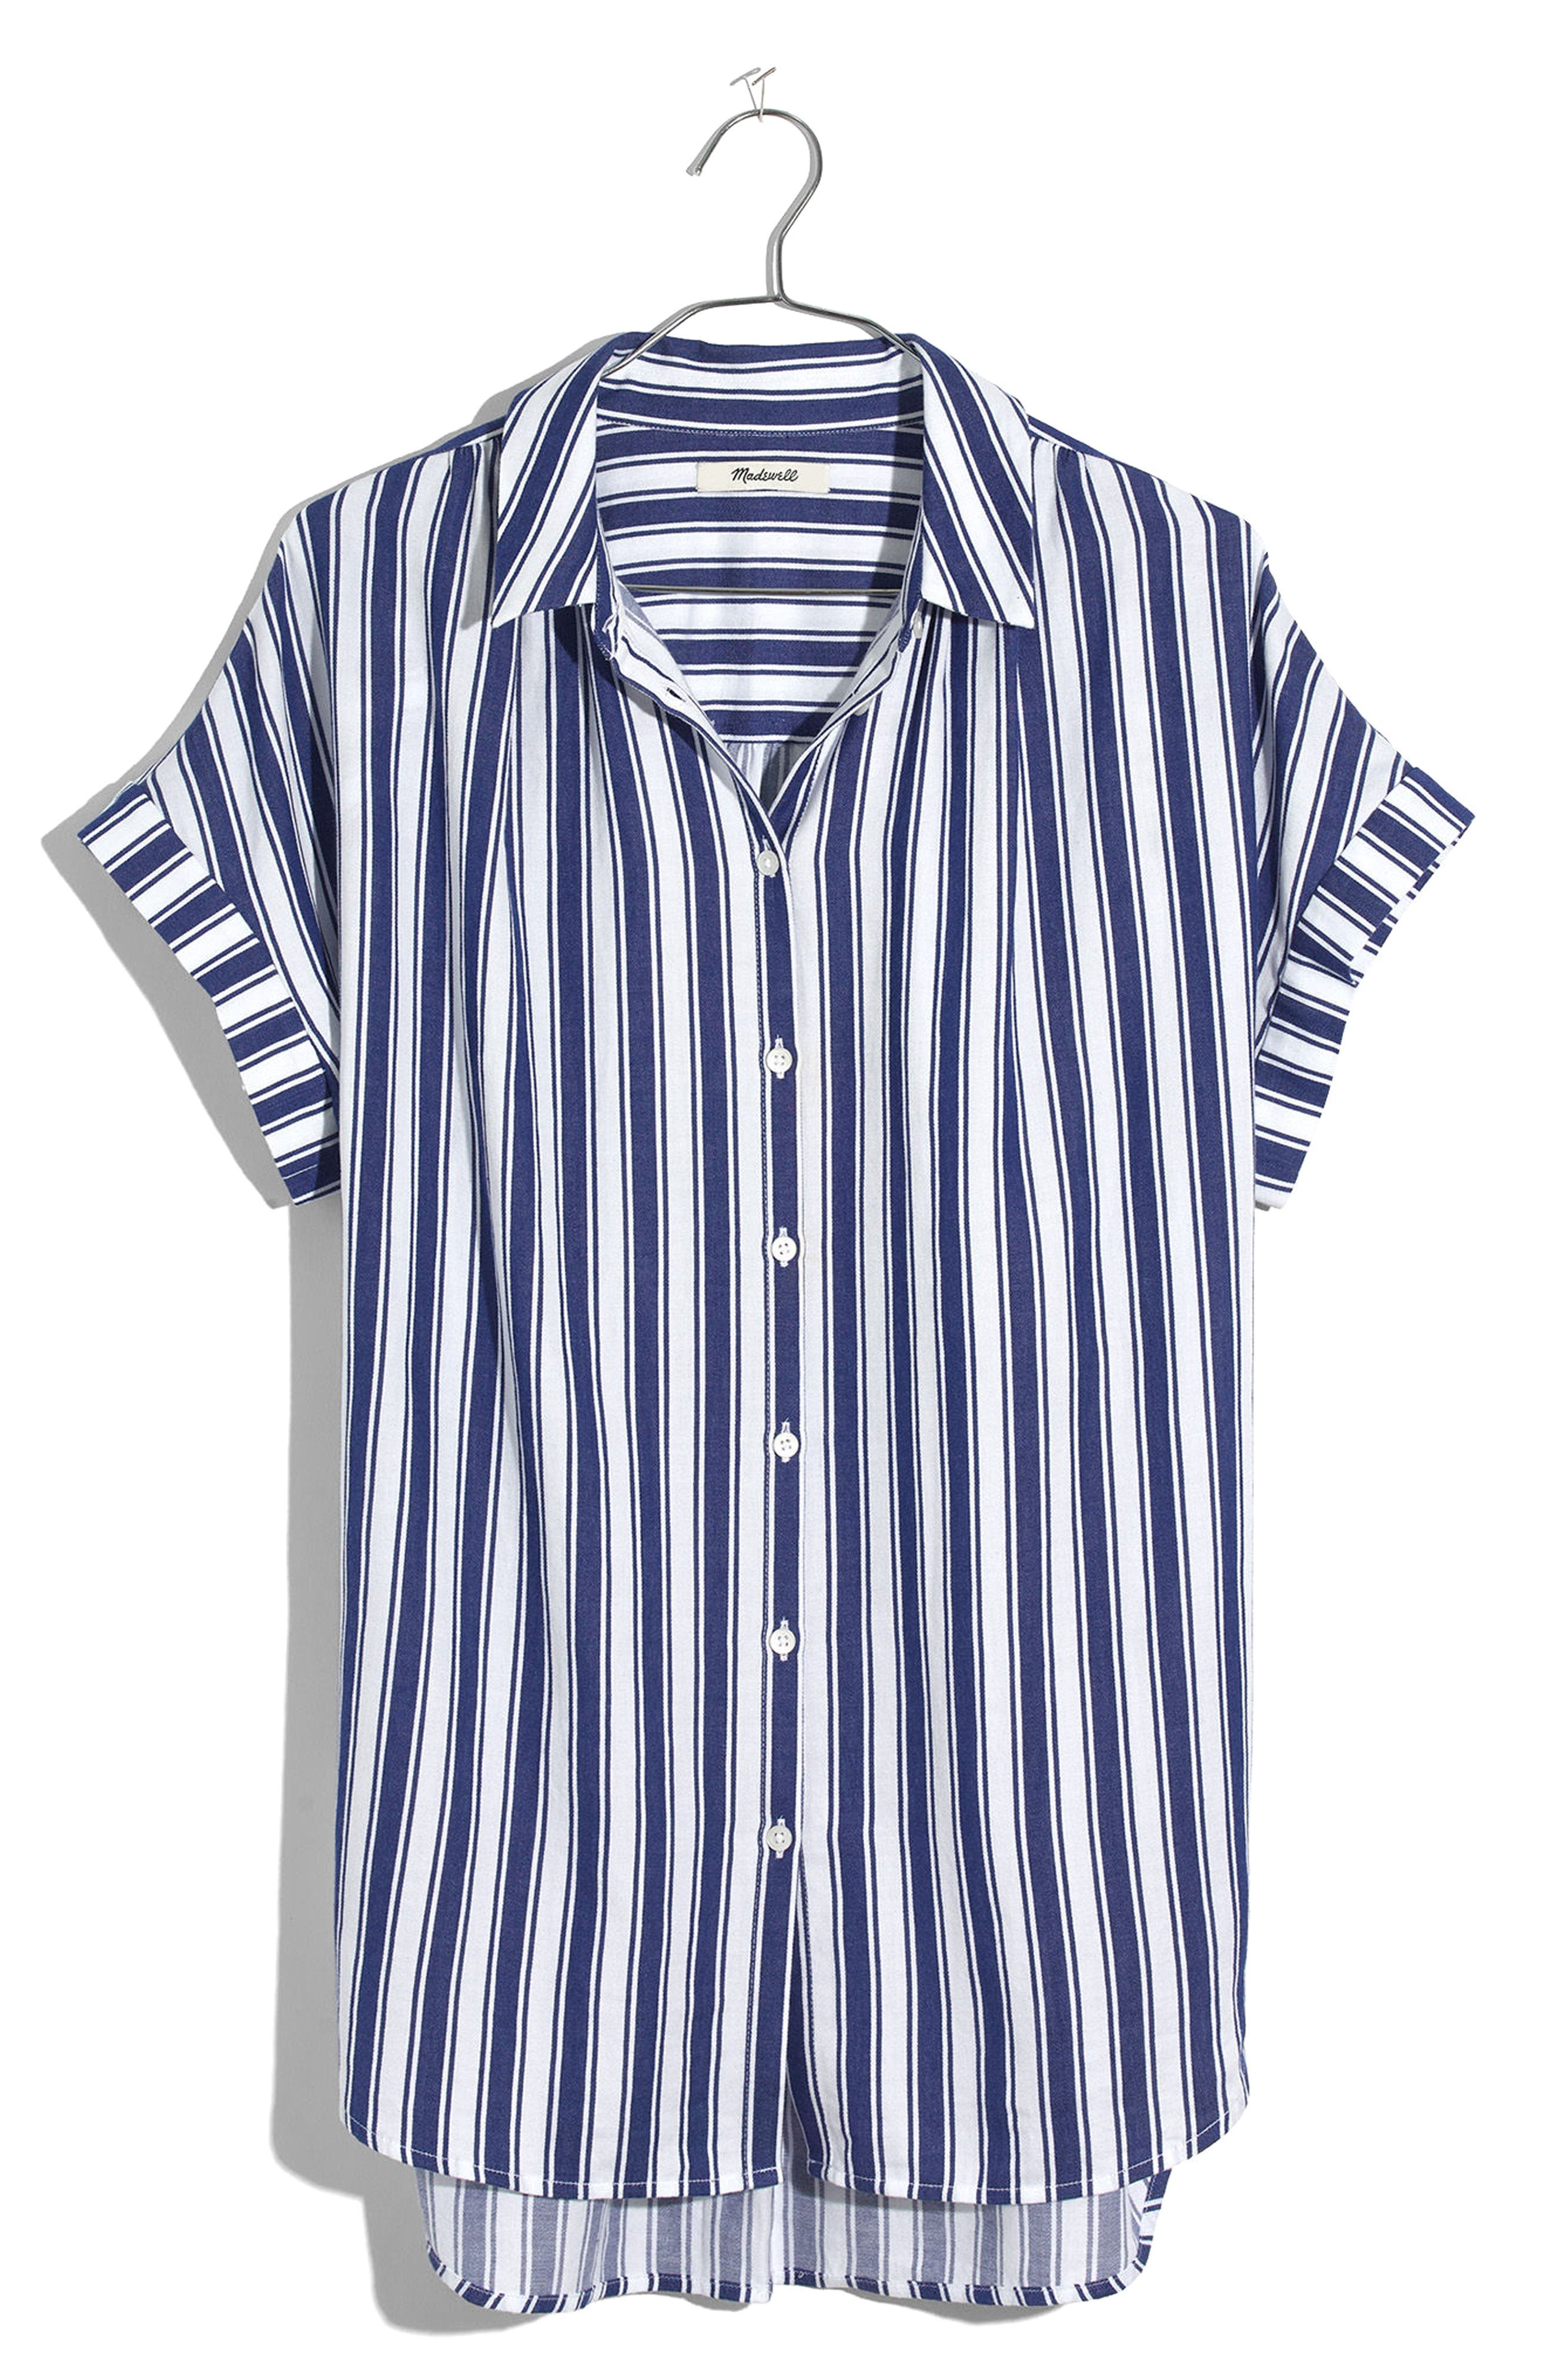 Stripe Central Shirt,                             Main thumbnail 1, color,                             Oxford Blue